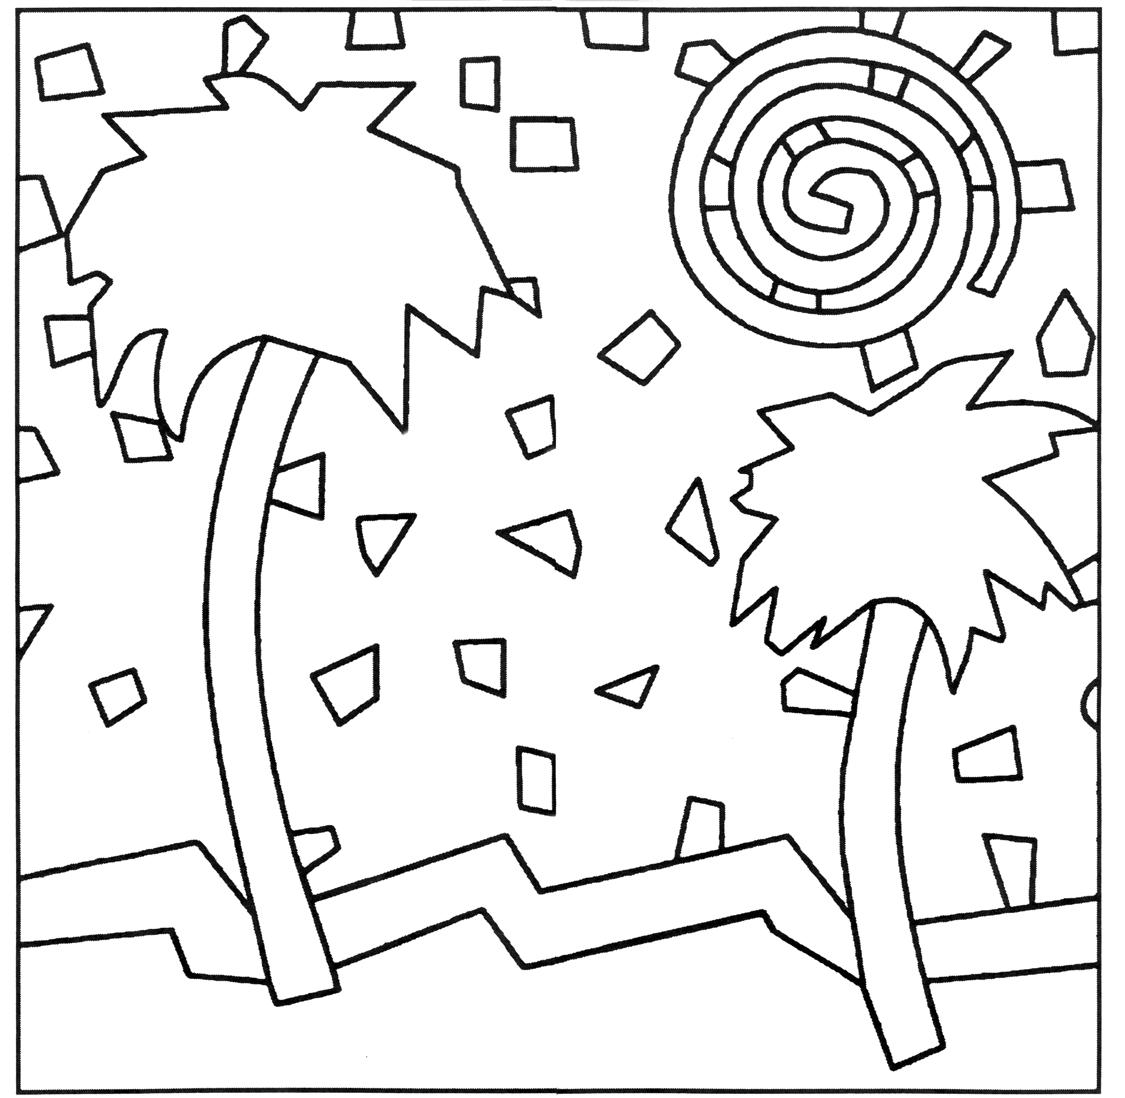 Templates For Kids Drawing at GetDrawings.com | Free for personal ...